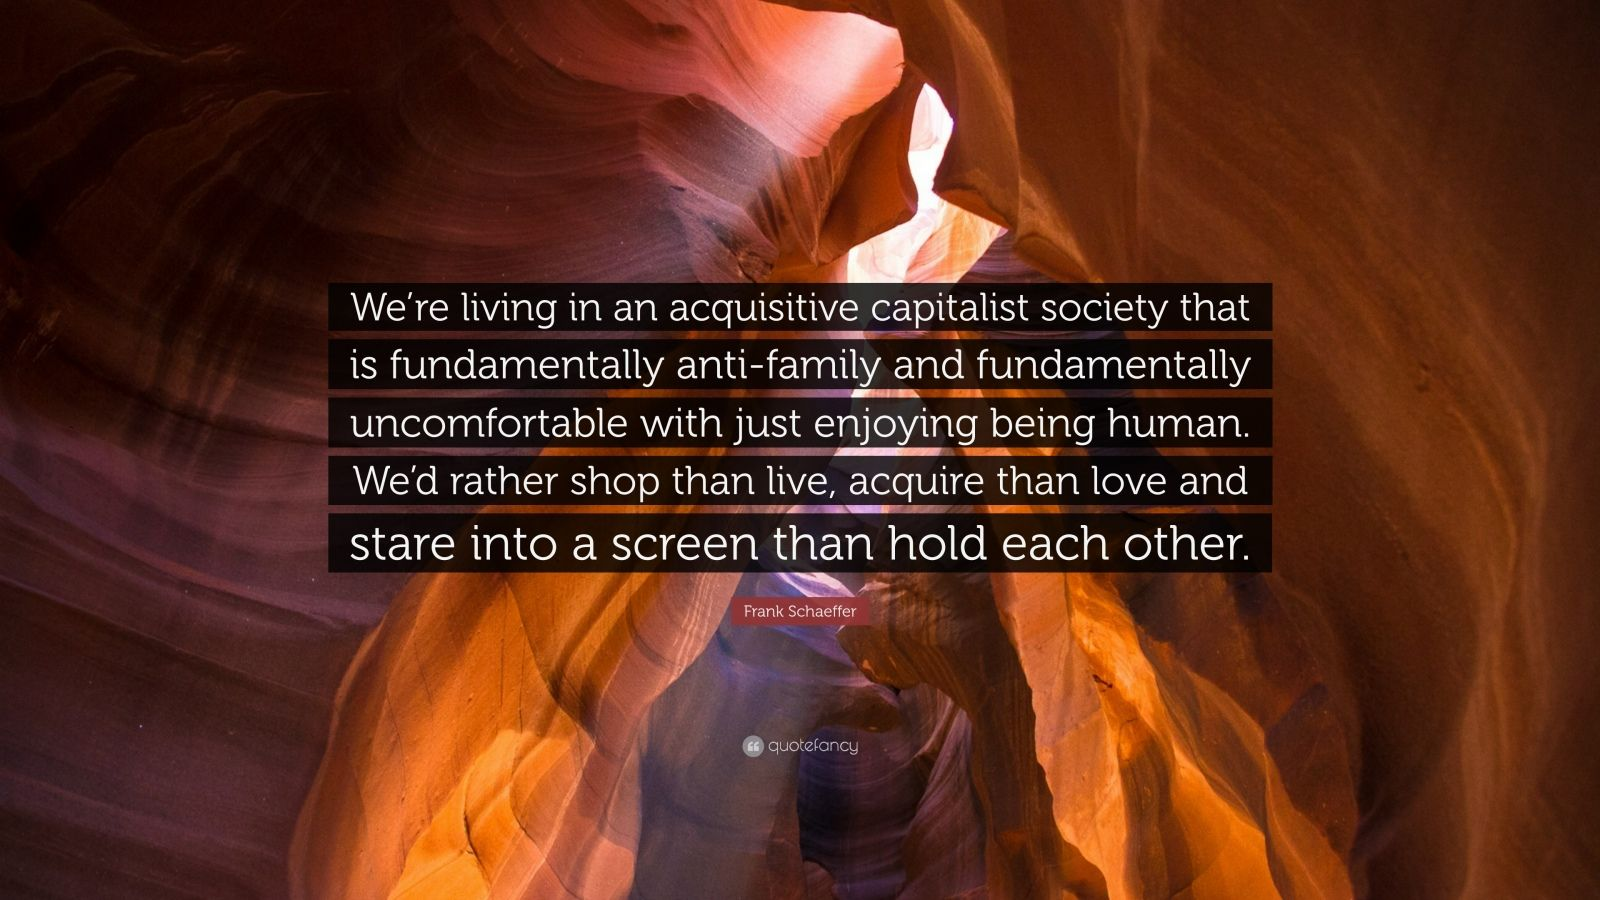 """Frank Schaeffer Quote: """"We're living in an acquisitive capitalist society that is fundamentally anti-family and fundamentally uncomfortable with just enjoying being human. We'd rather shop than live, acquire than love and stare into a screen than hold each other."""""""